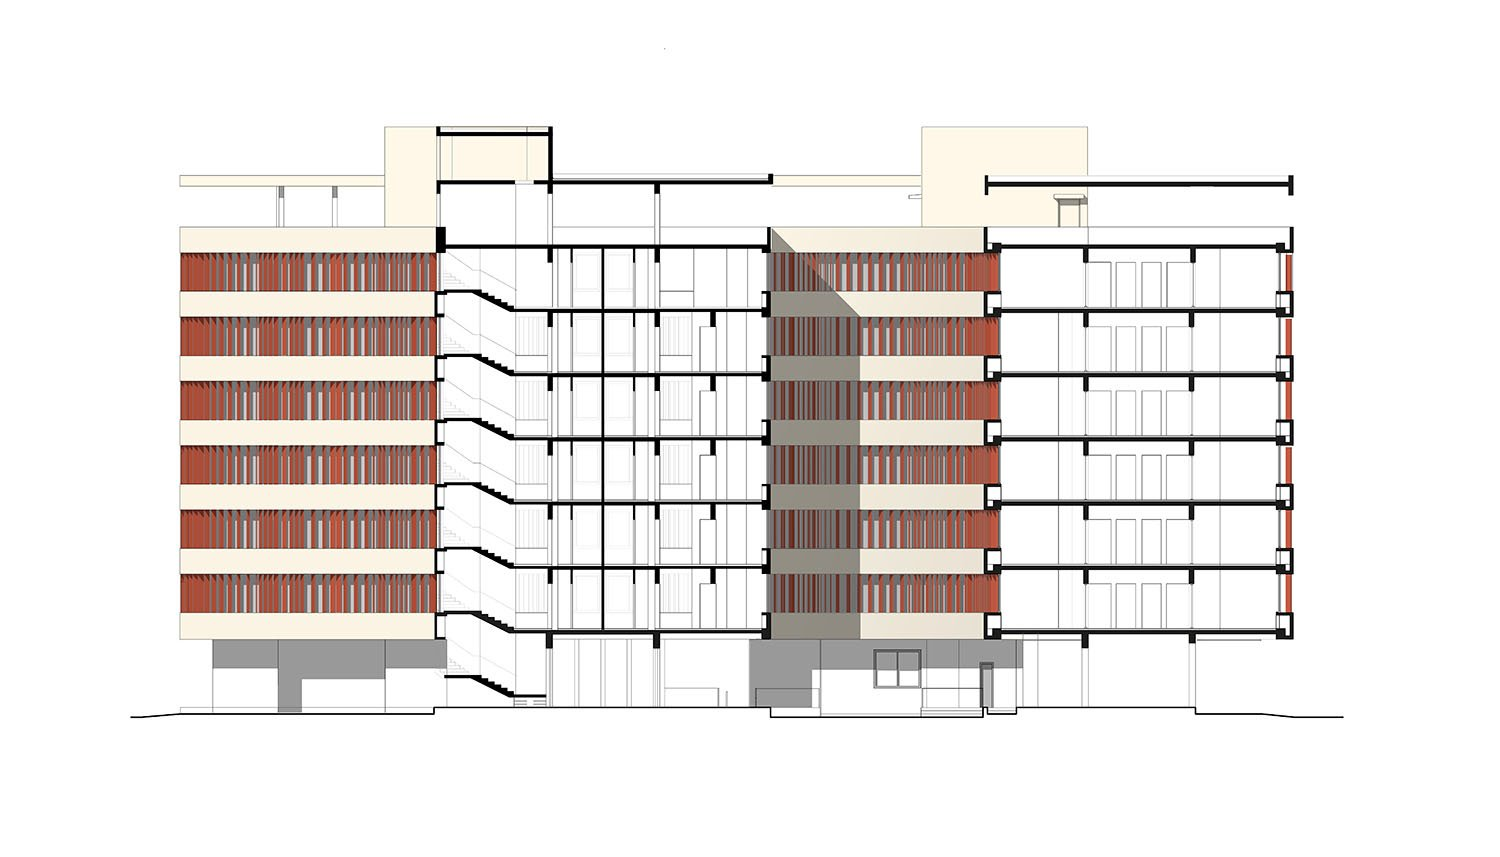 Typcical section 6 story-high boys´ or girls´ hostel  gmp von Gerkan, Marg and Partners Architects}